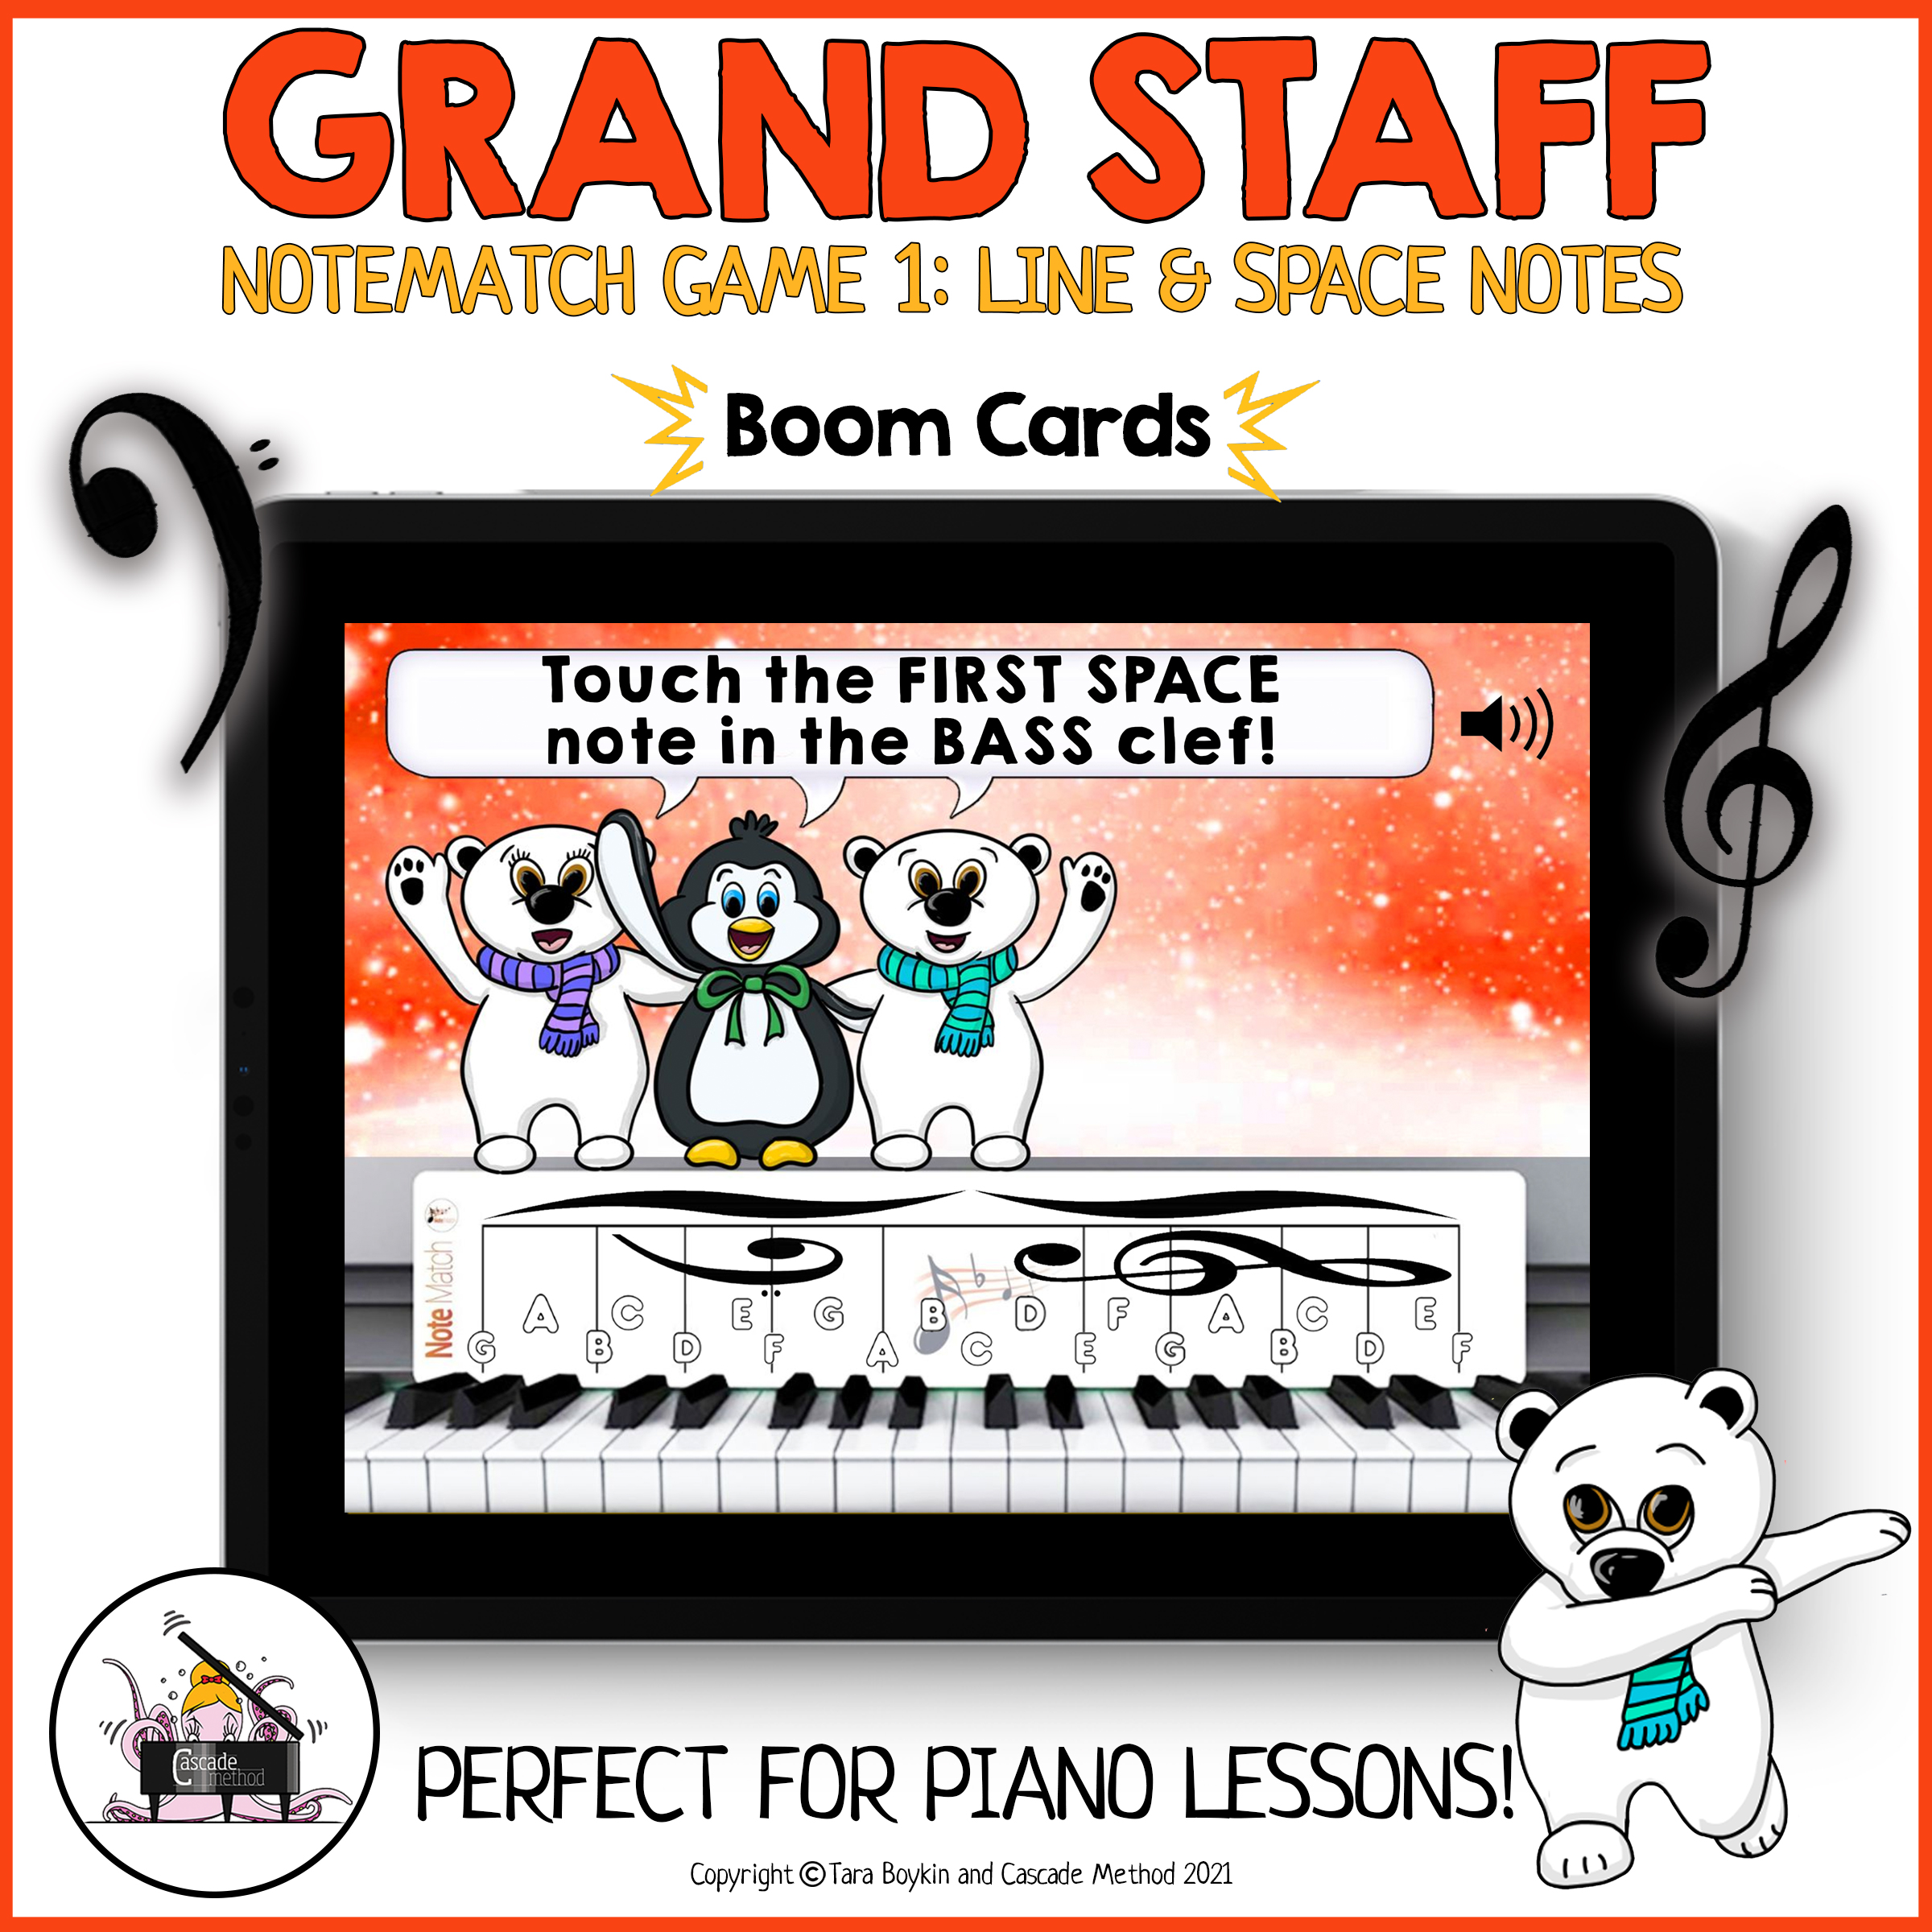 NoteMatch and Grand Staff Boom Cards